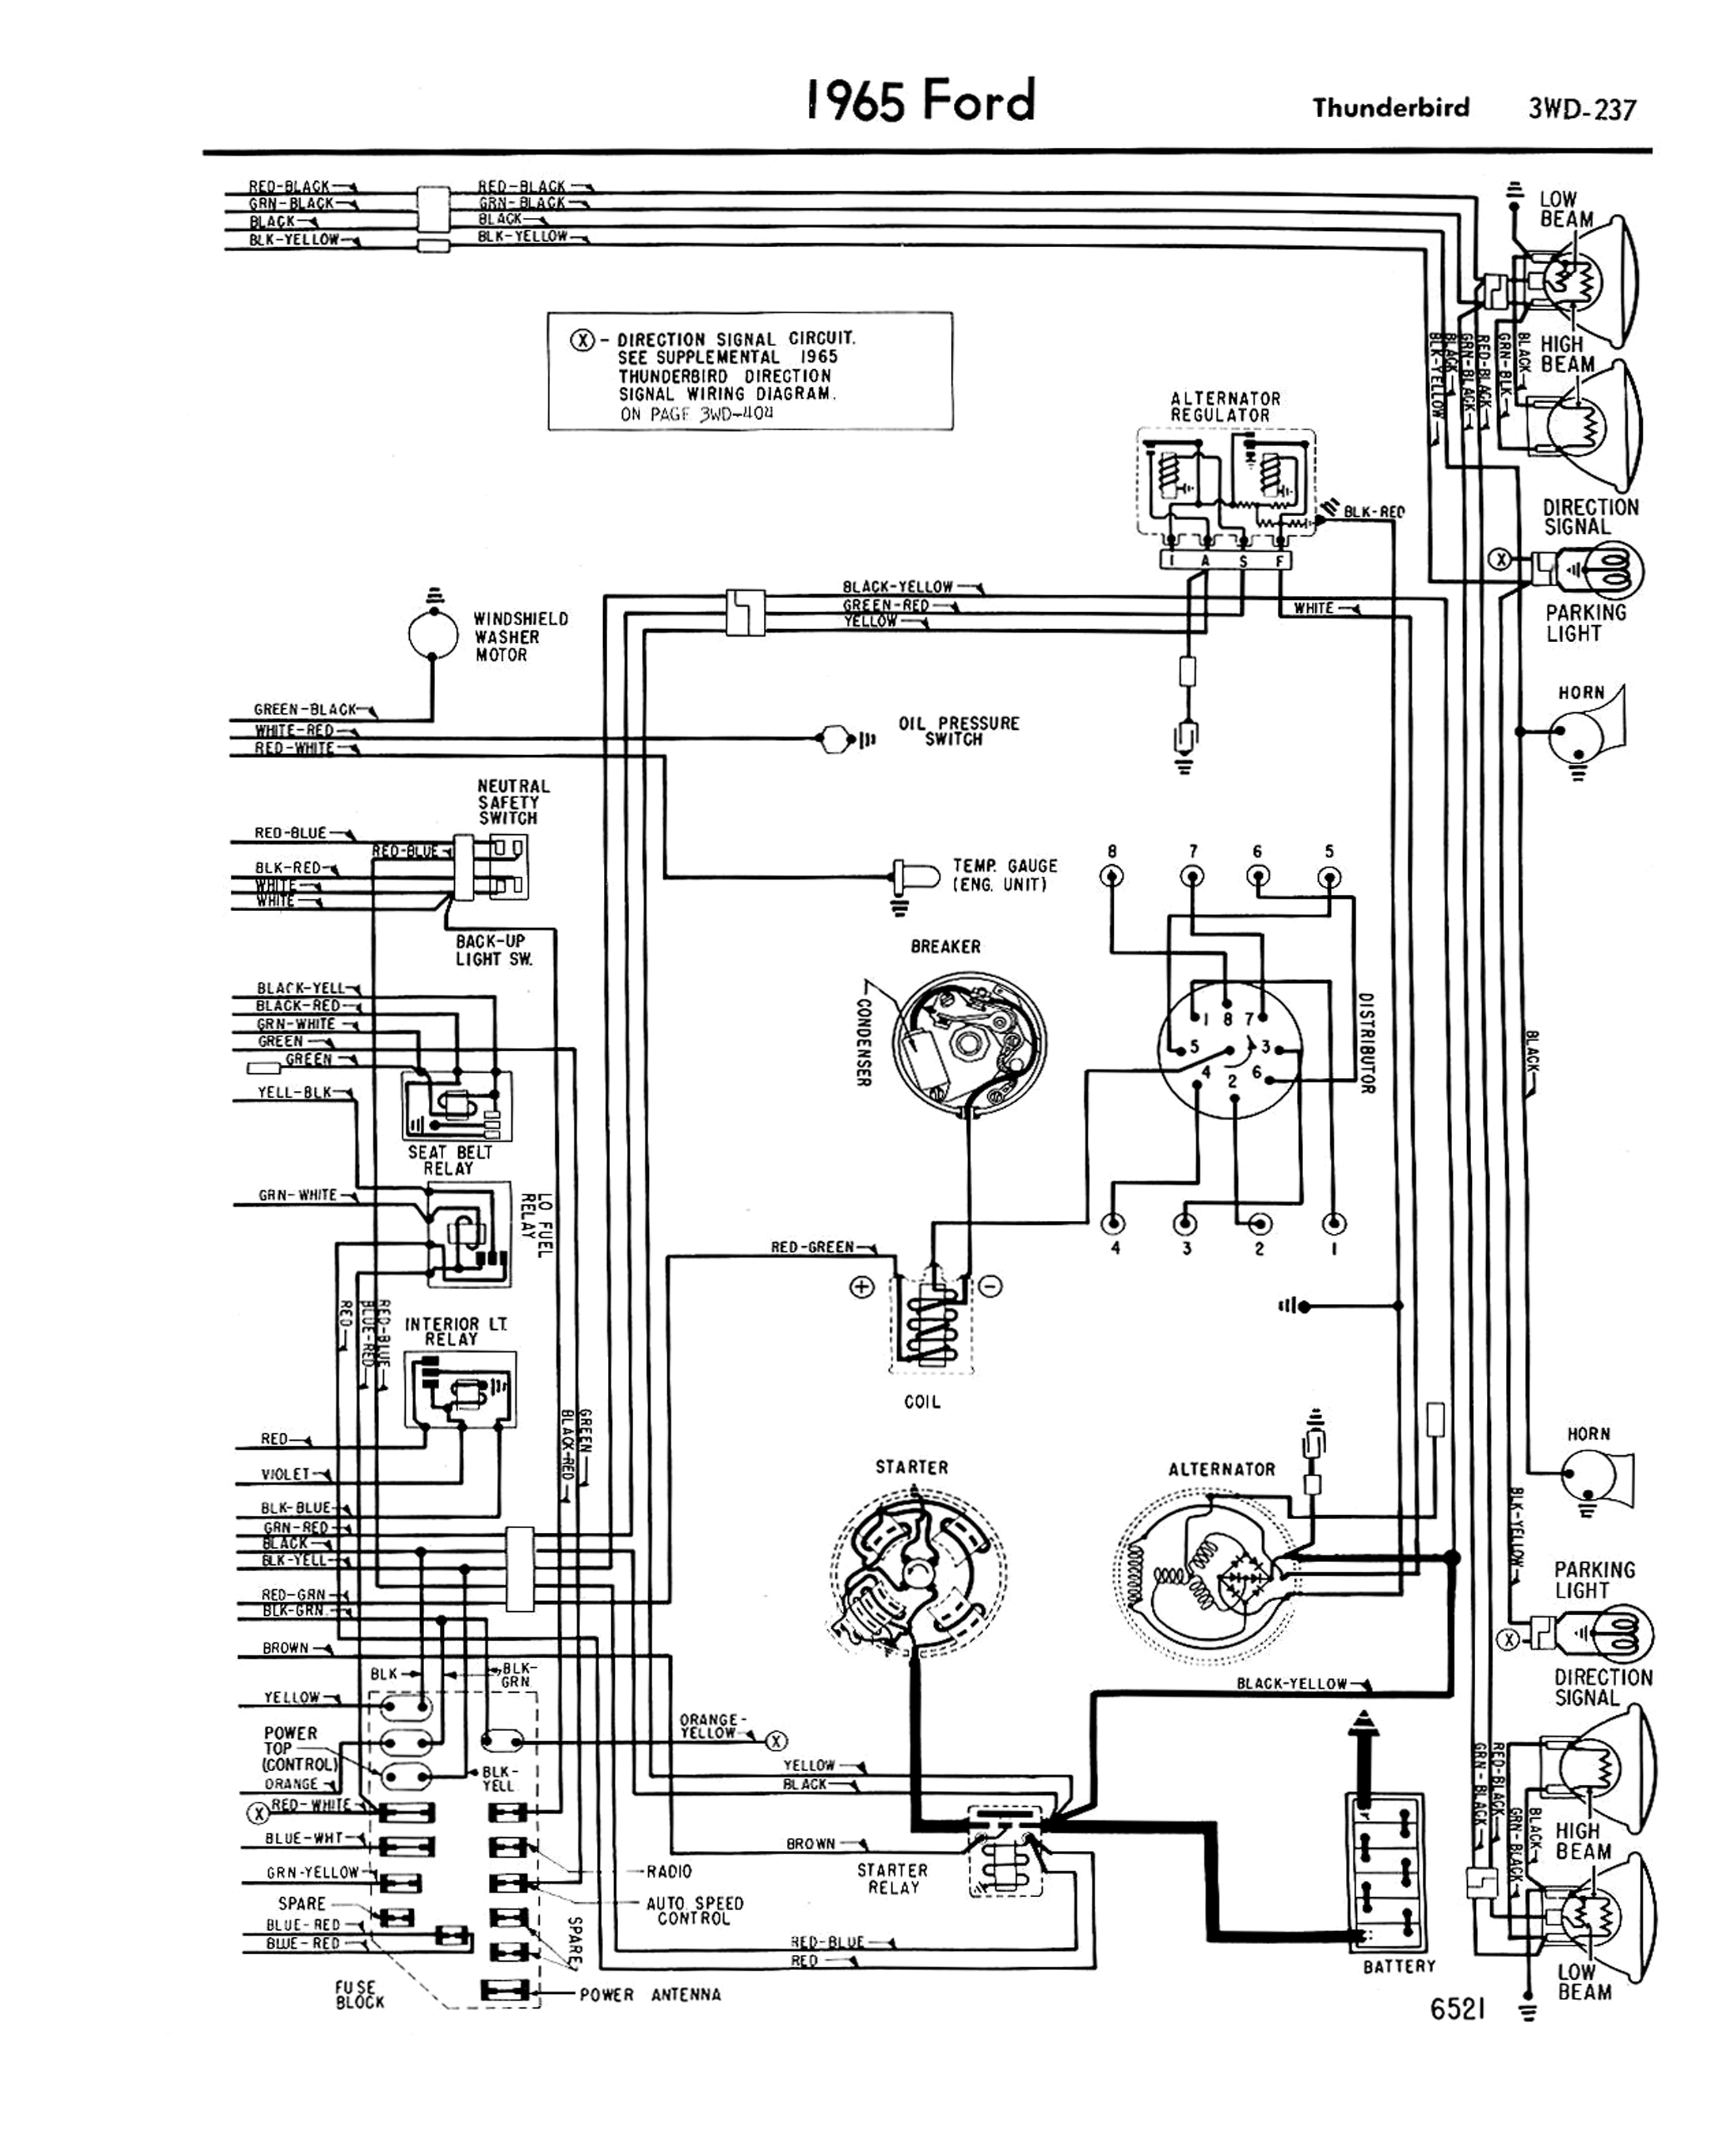 65 Thunderbird Wiring Diagram